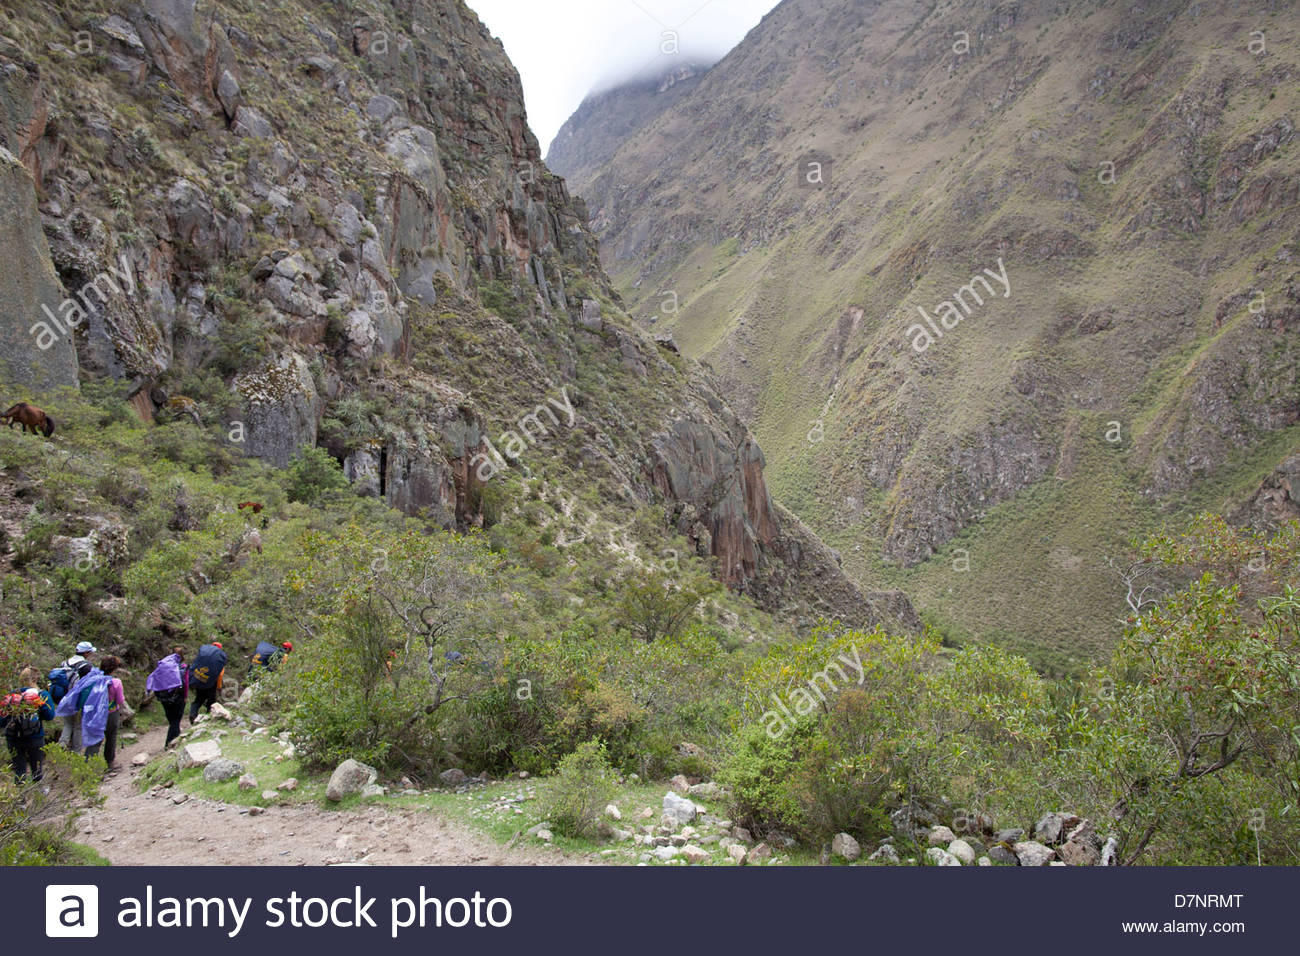 Trekkers walking the Inca Trail at low altitude - Stock Image